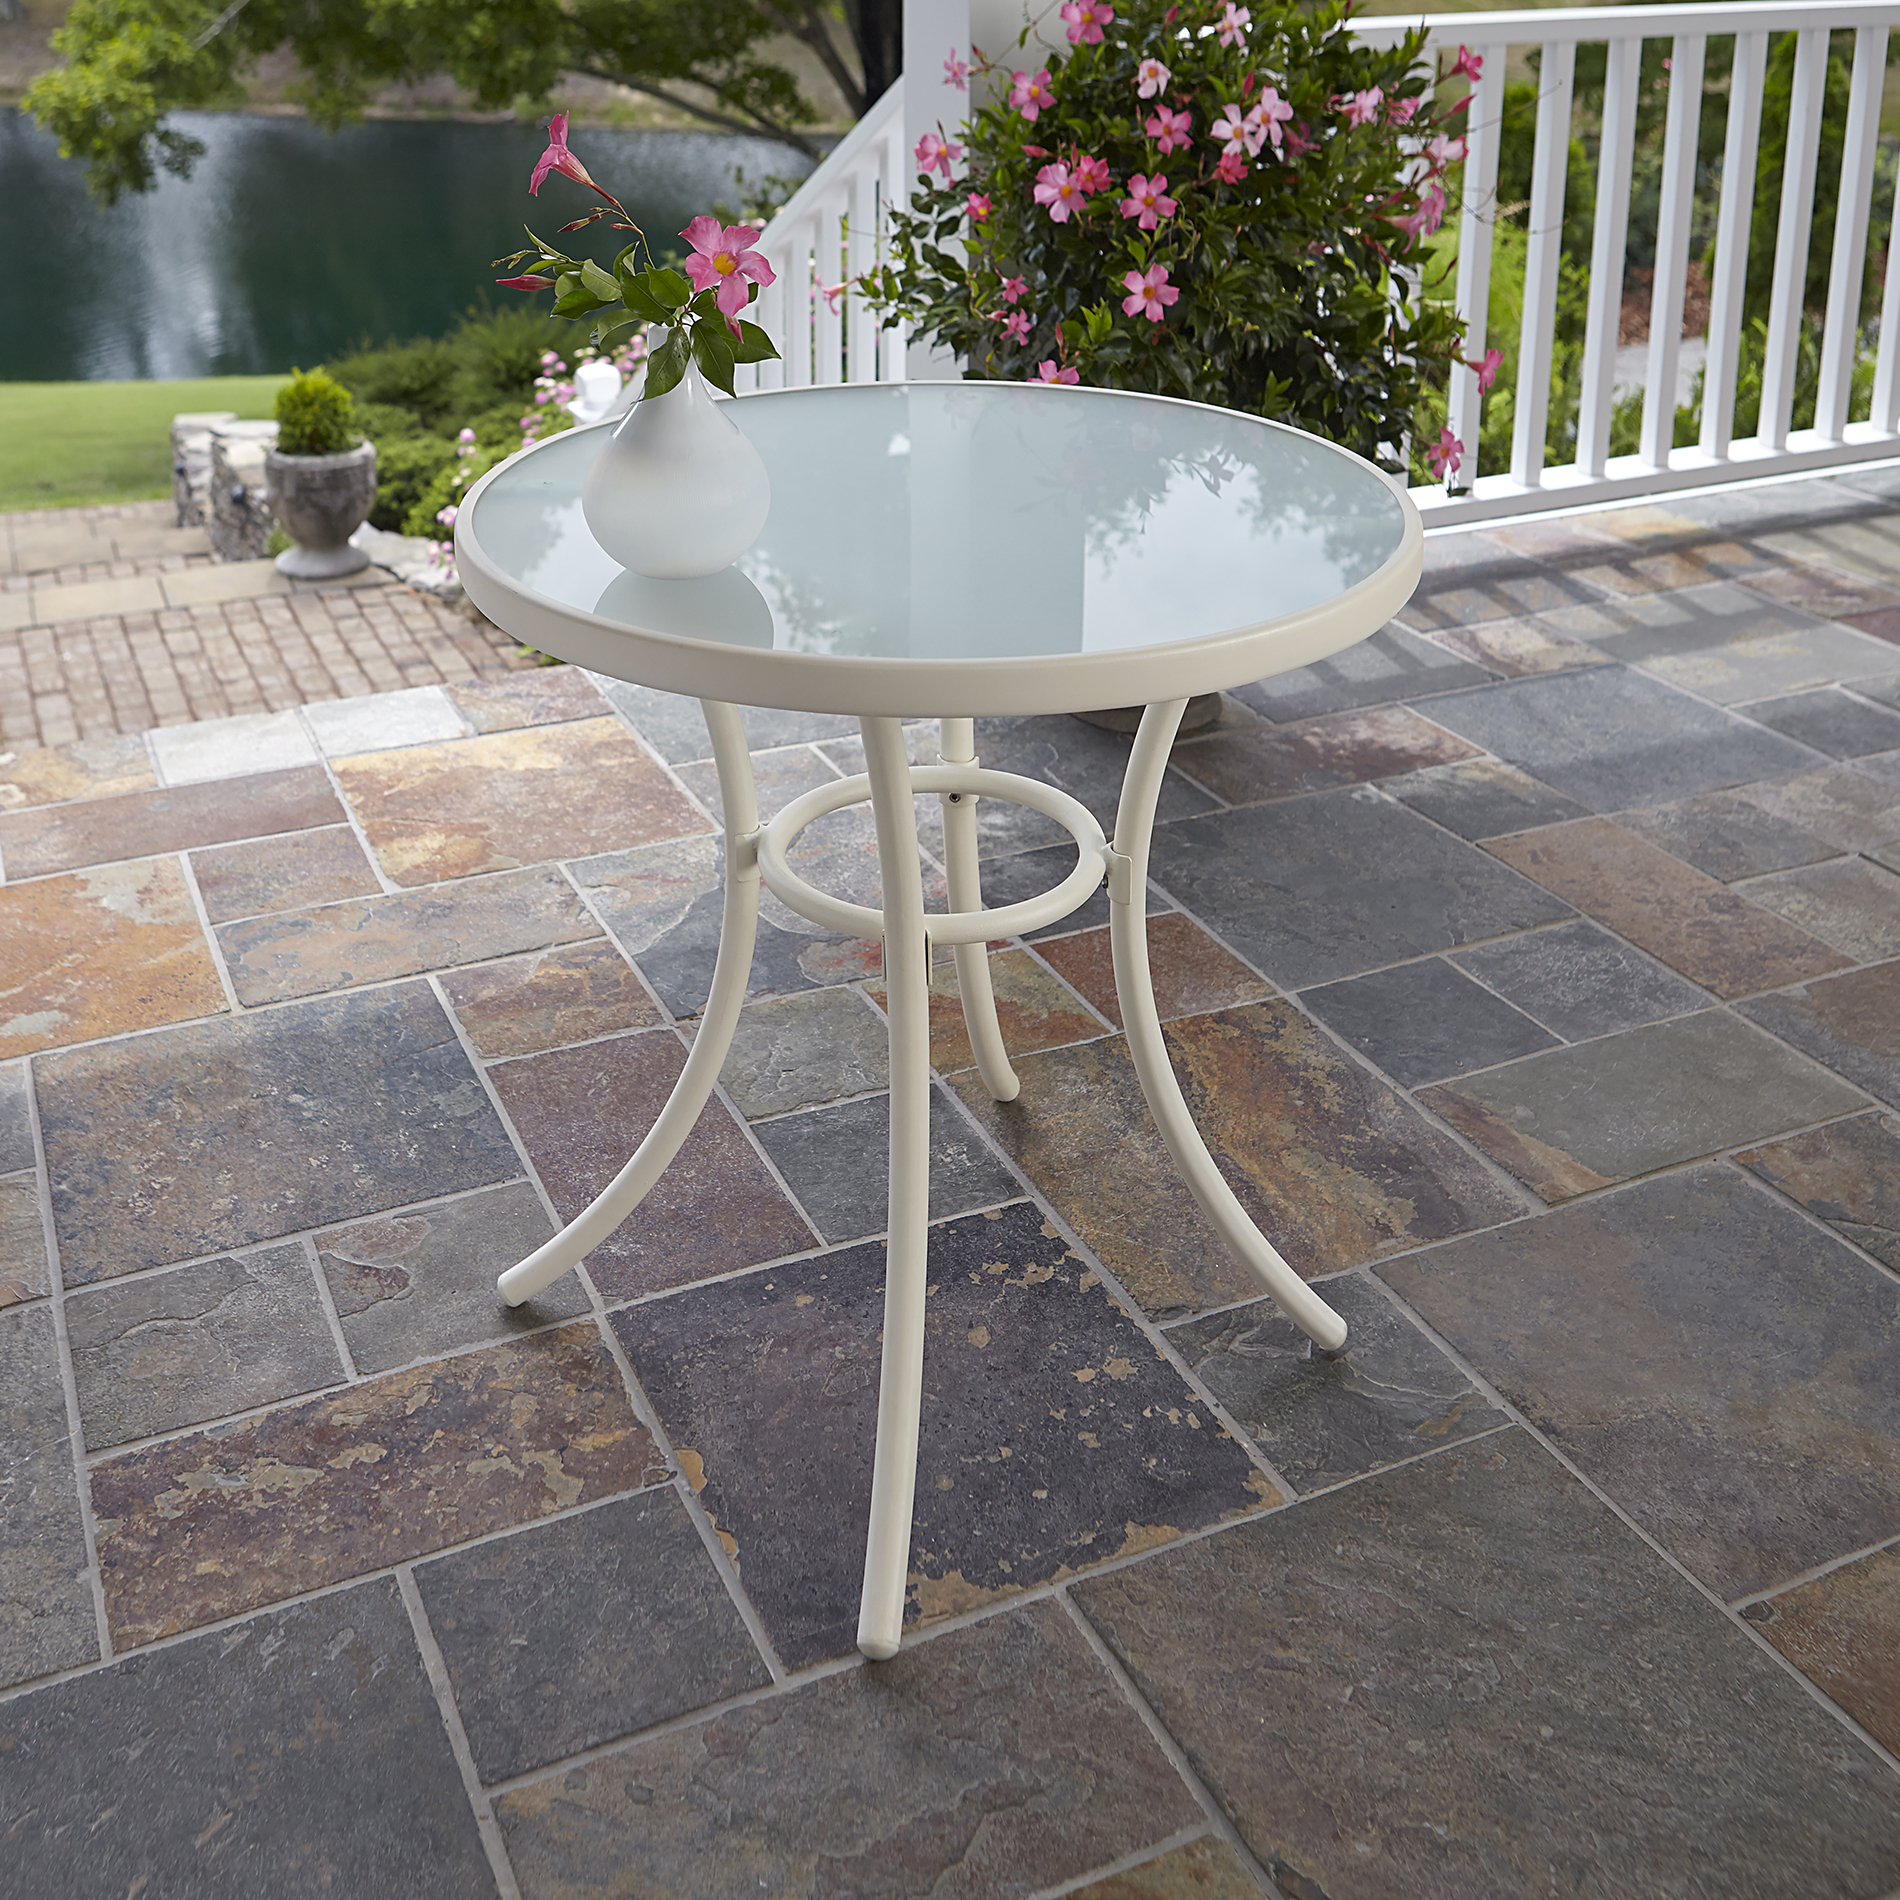 Tempered Glass Patio Table  Kmartcom